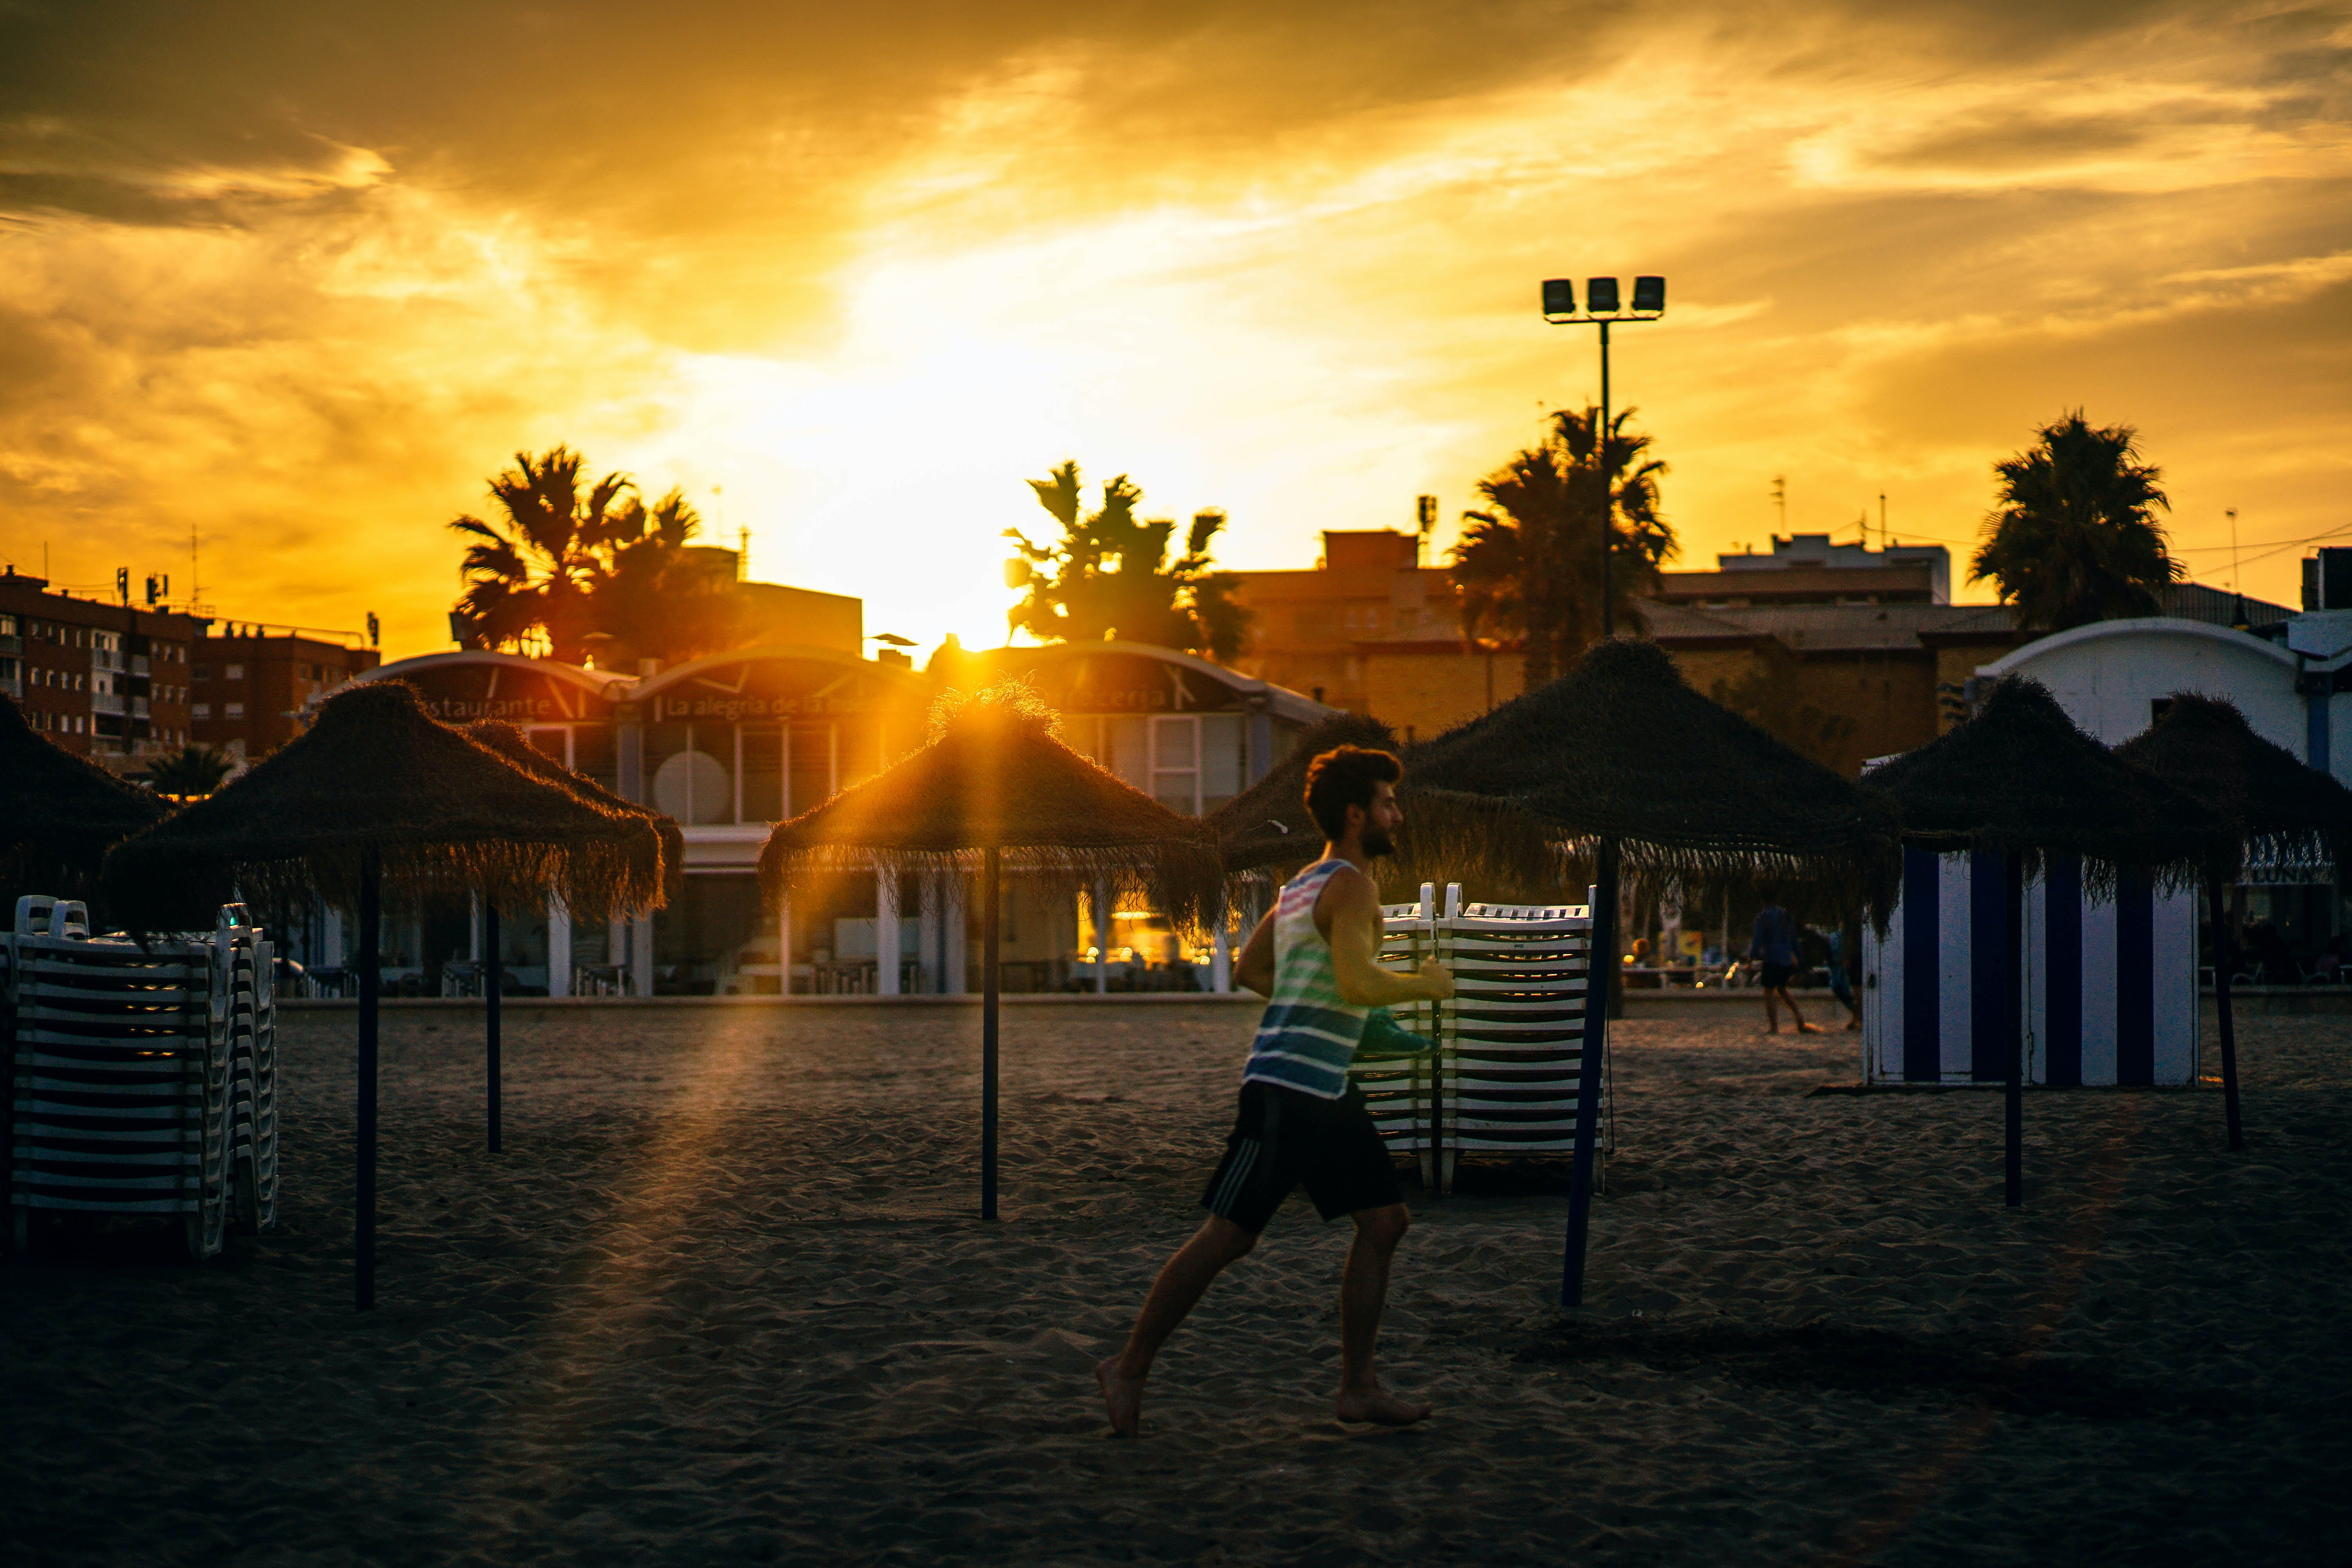 Man Running in the Beach during Sunset